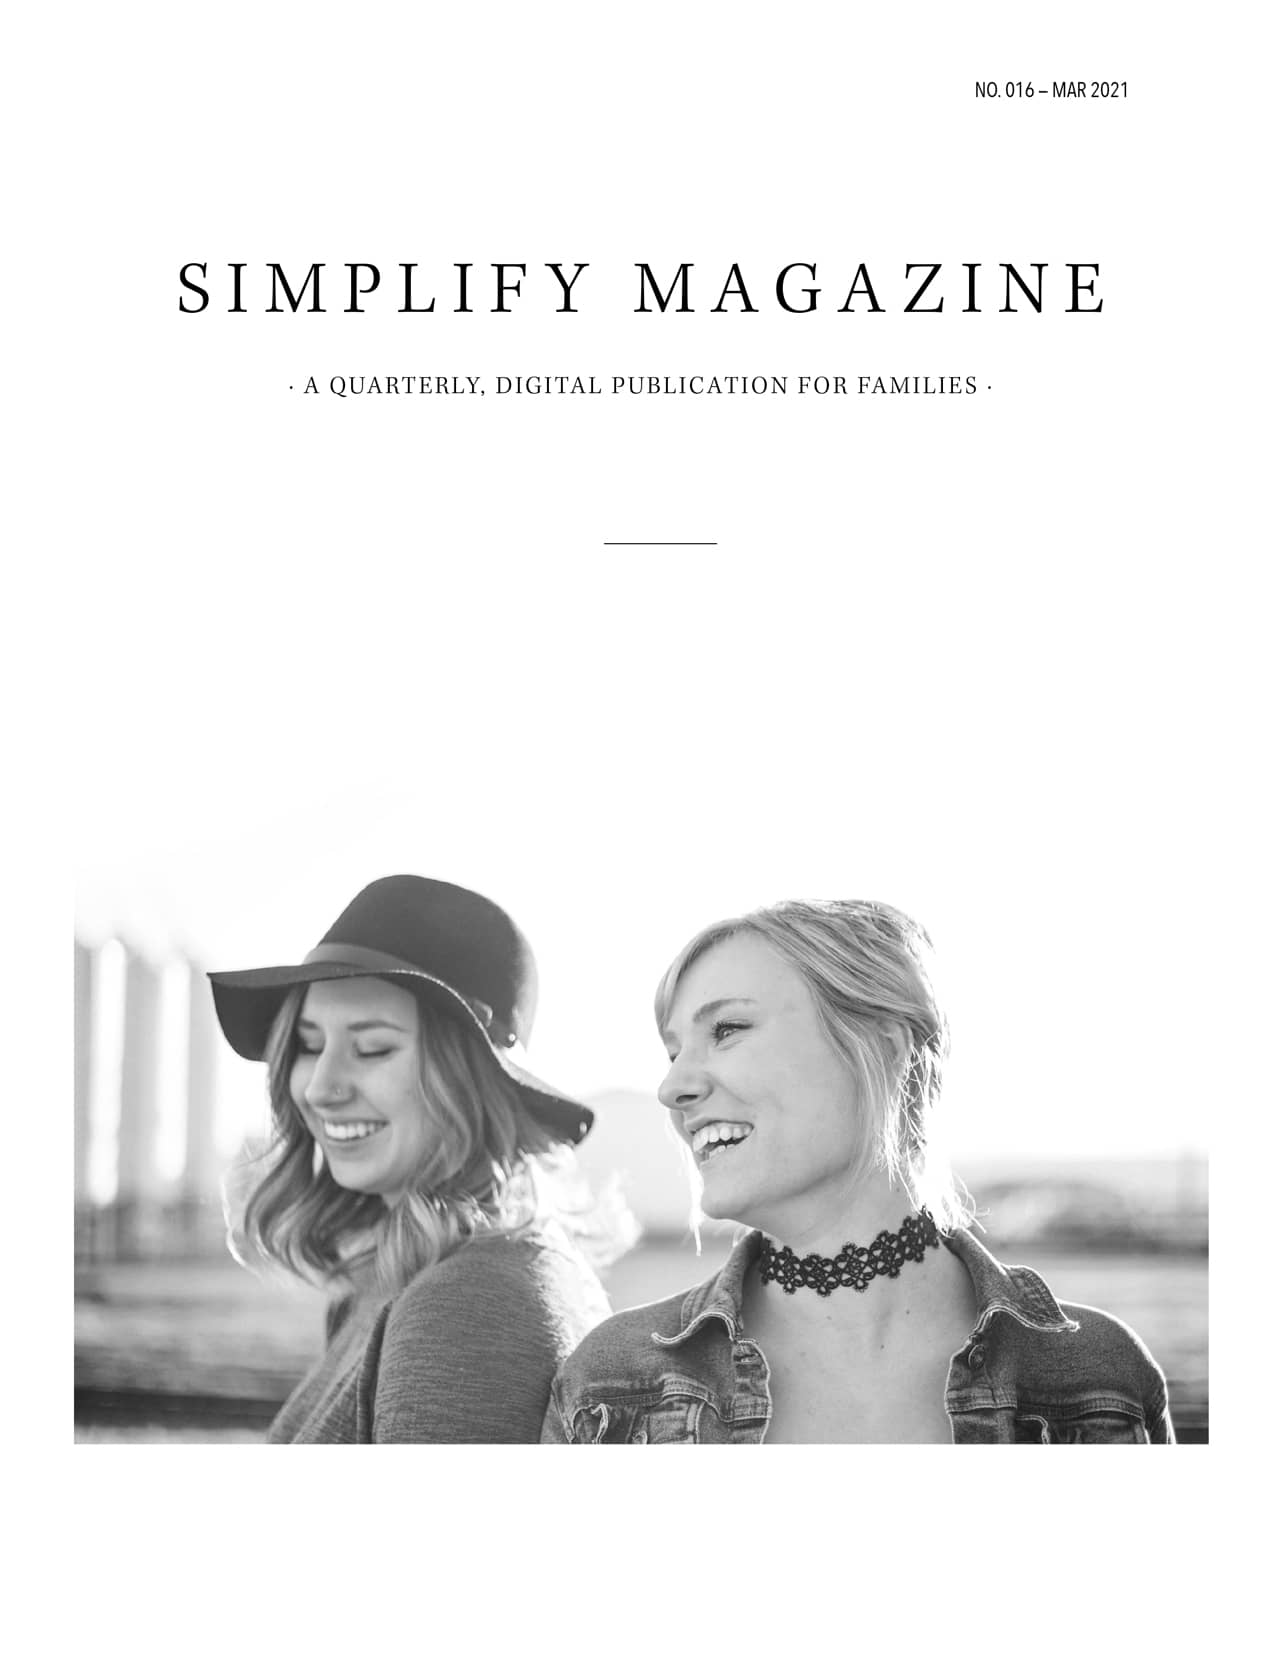 Simplify Magazine Issue #016